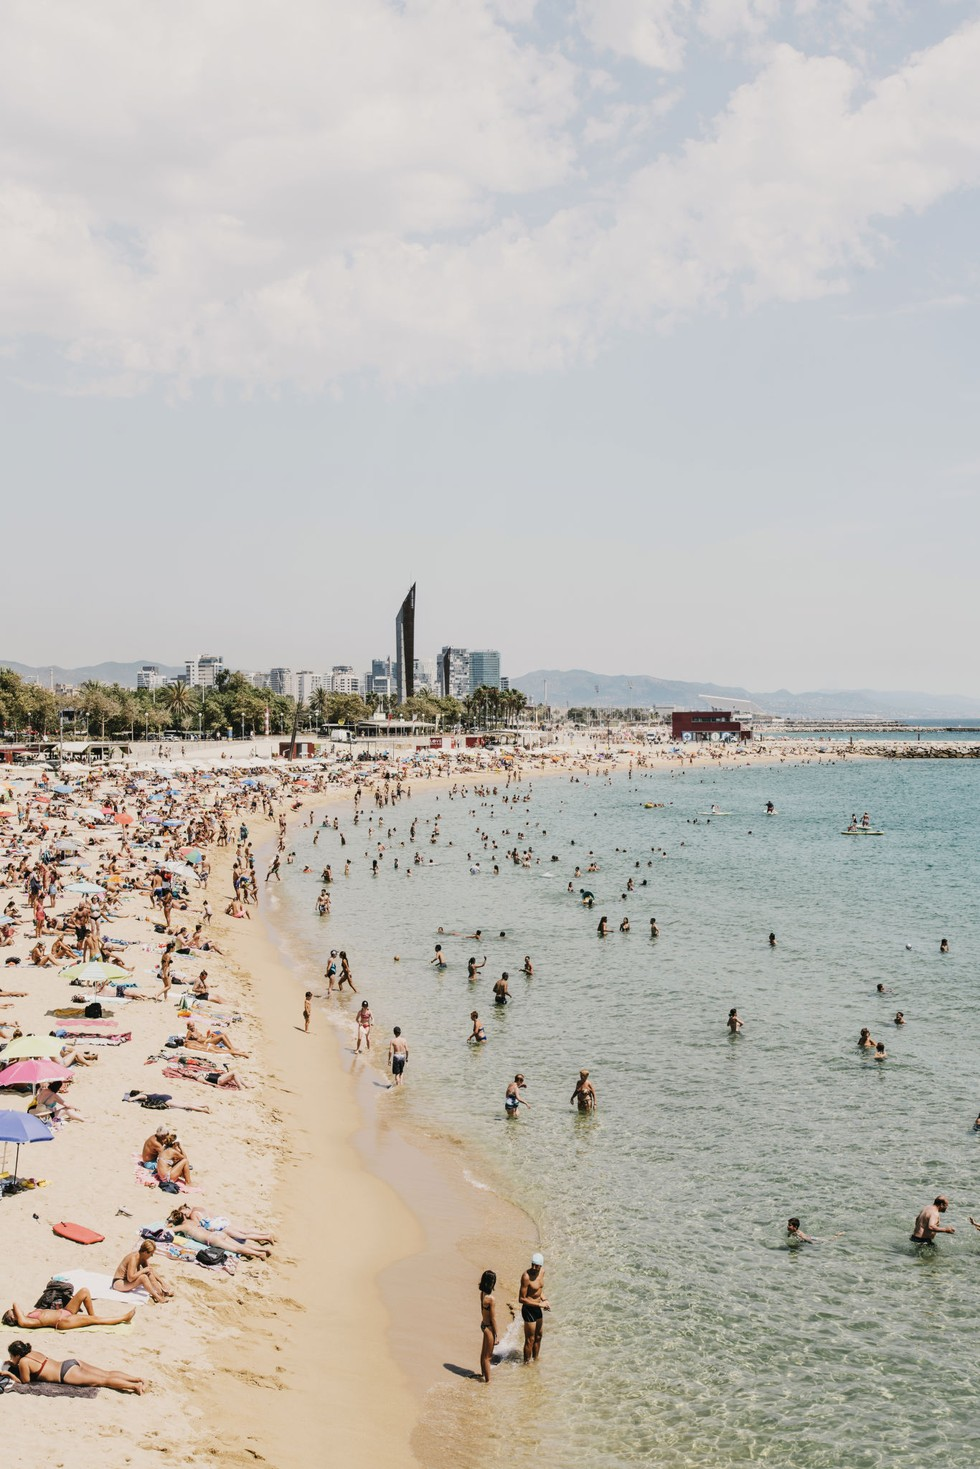 Barcelona's man-made beach